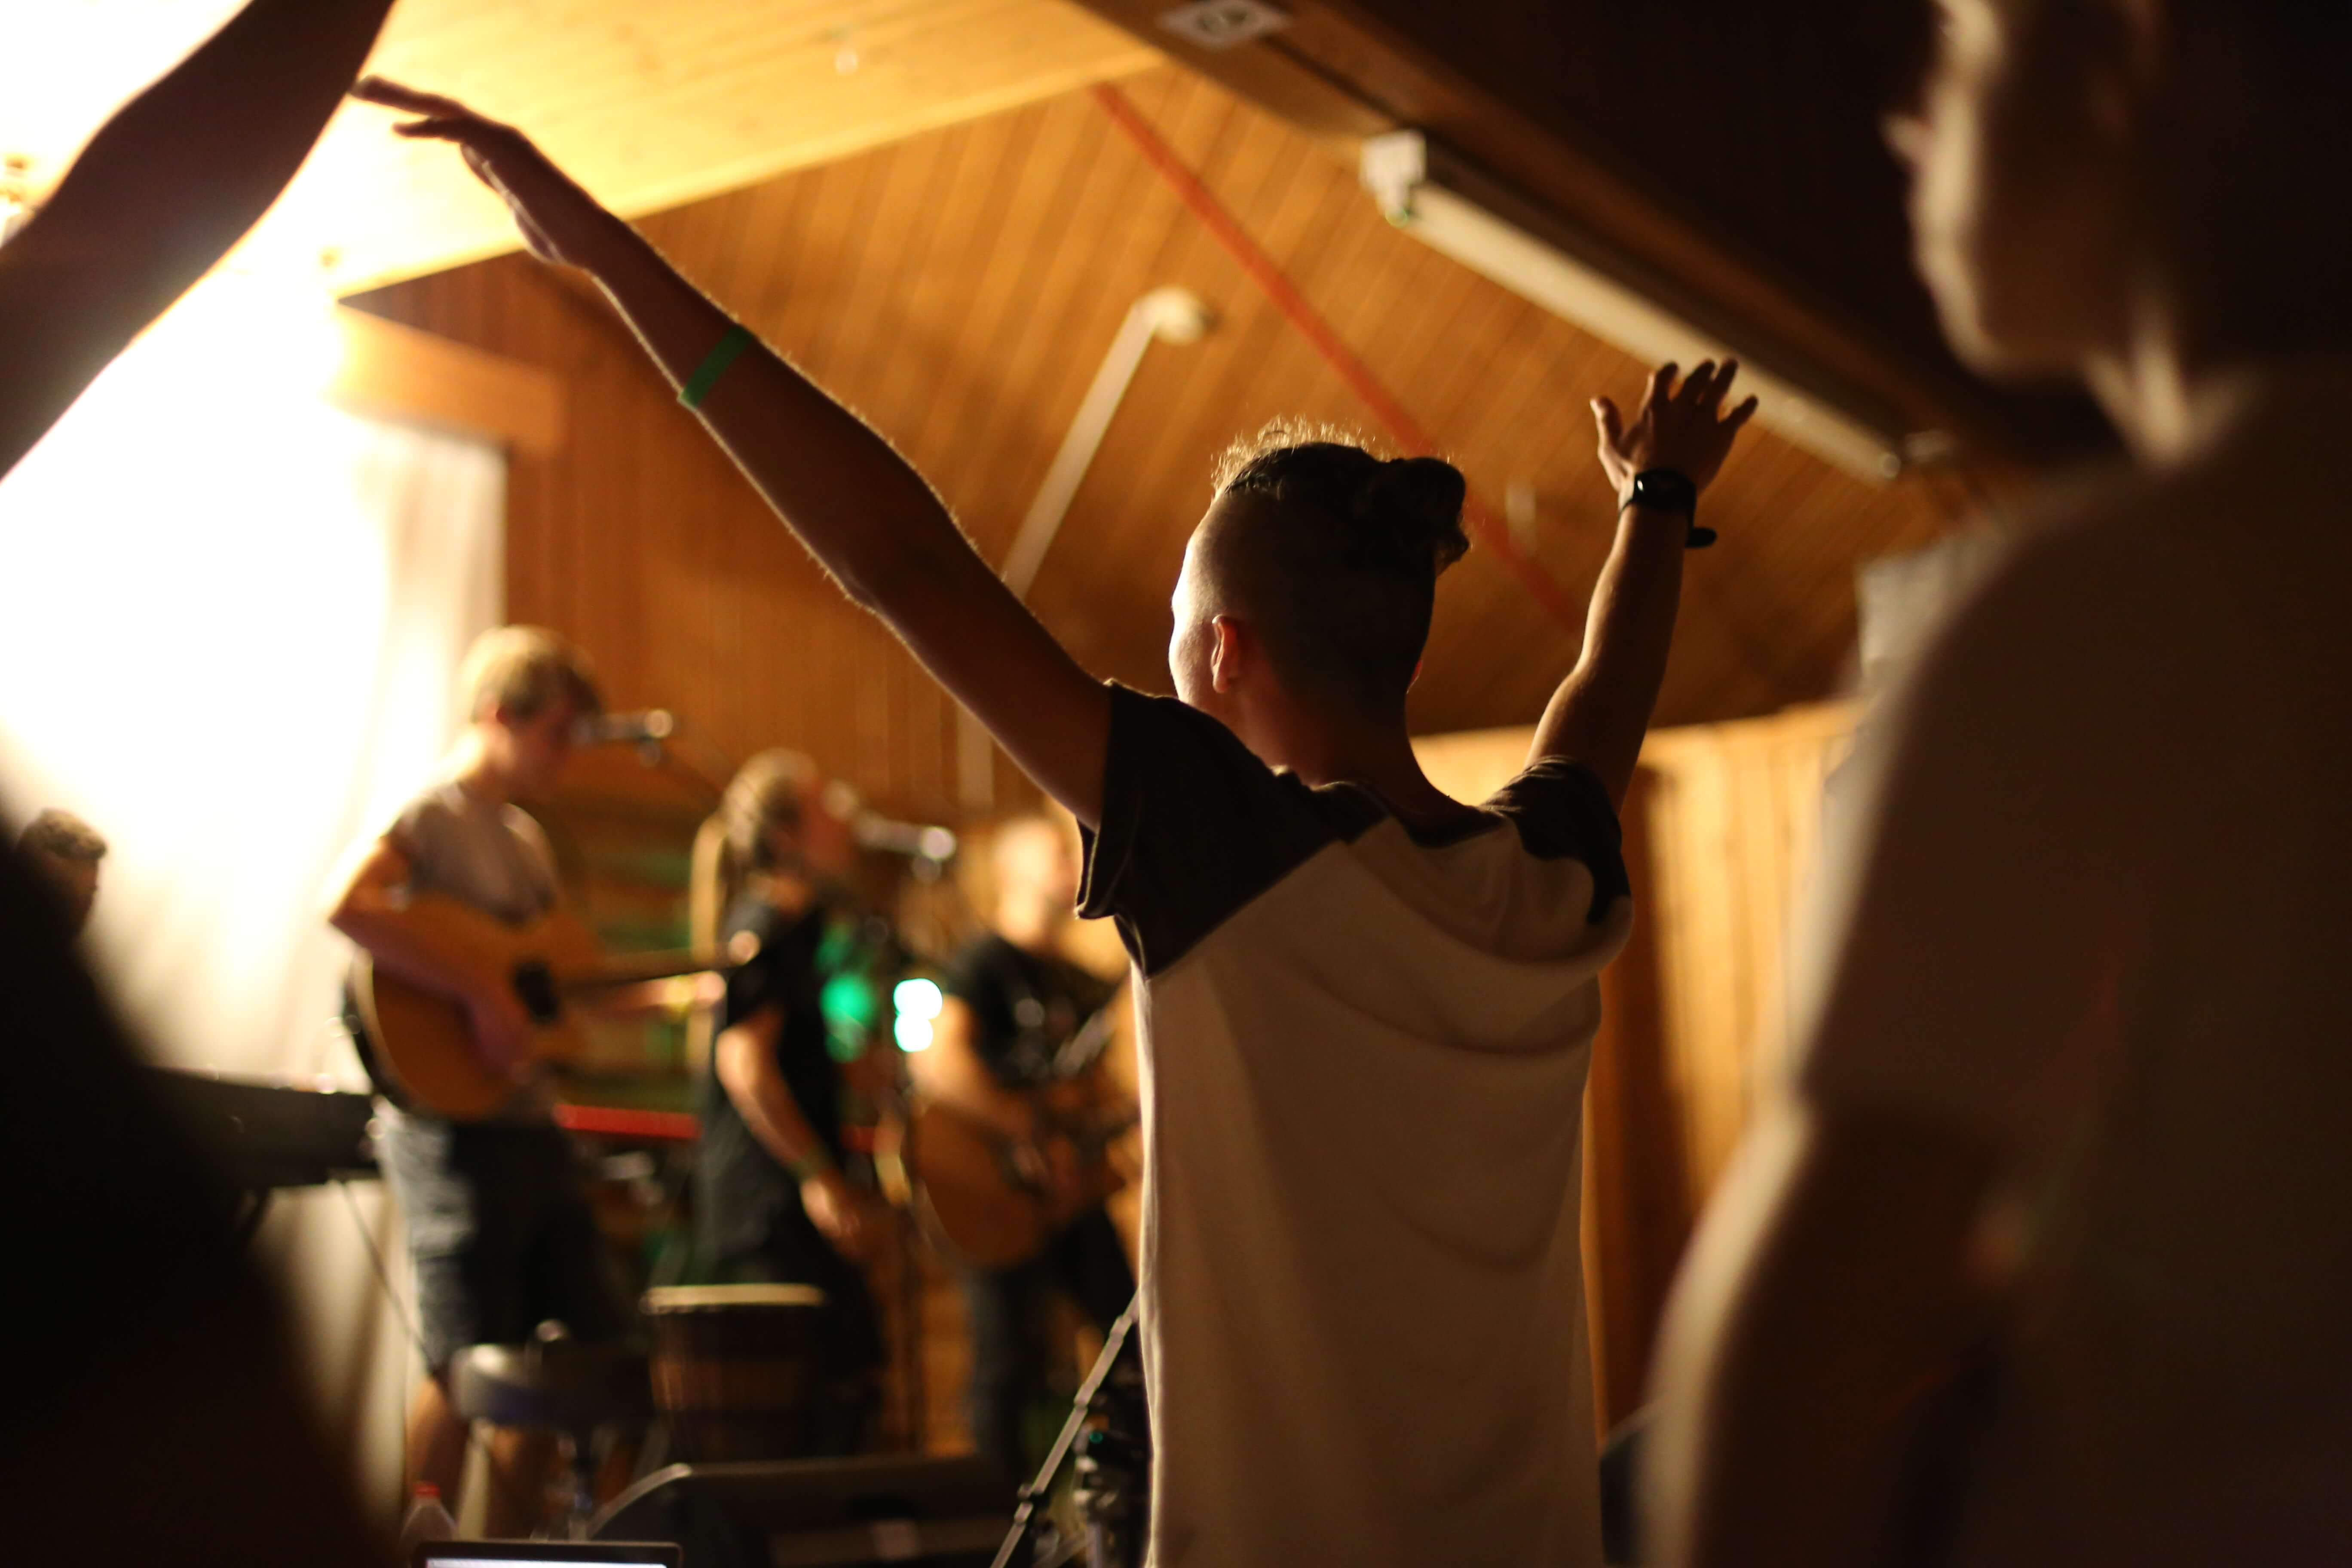 A teen lifting hands in praise ... a background of worship musicians playing guitars and singing